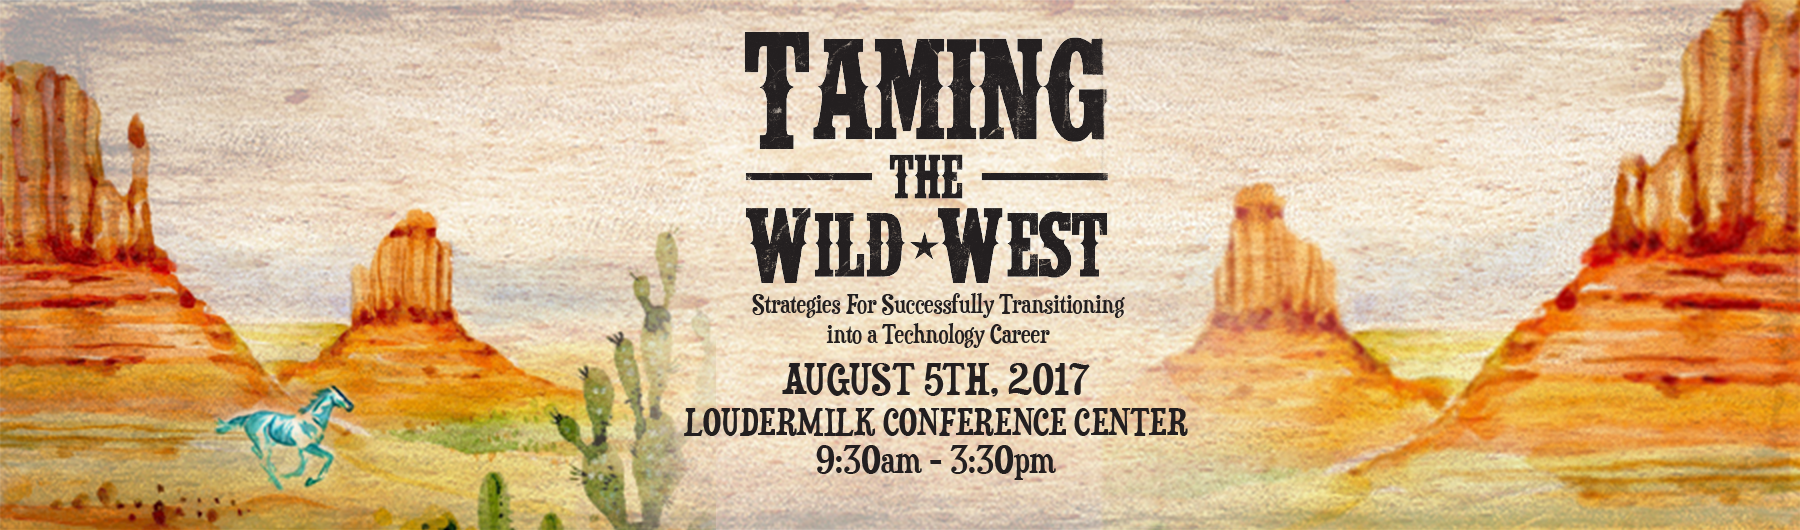 Taming the Wild West